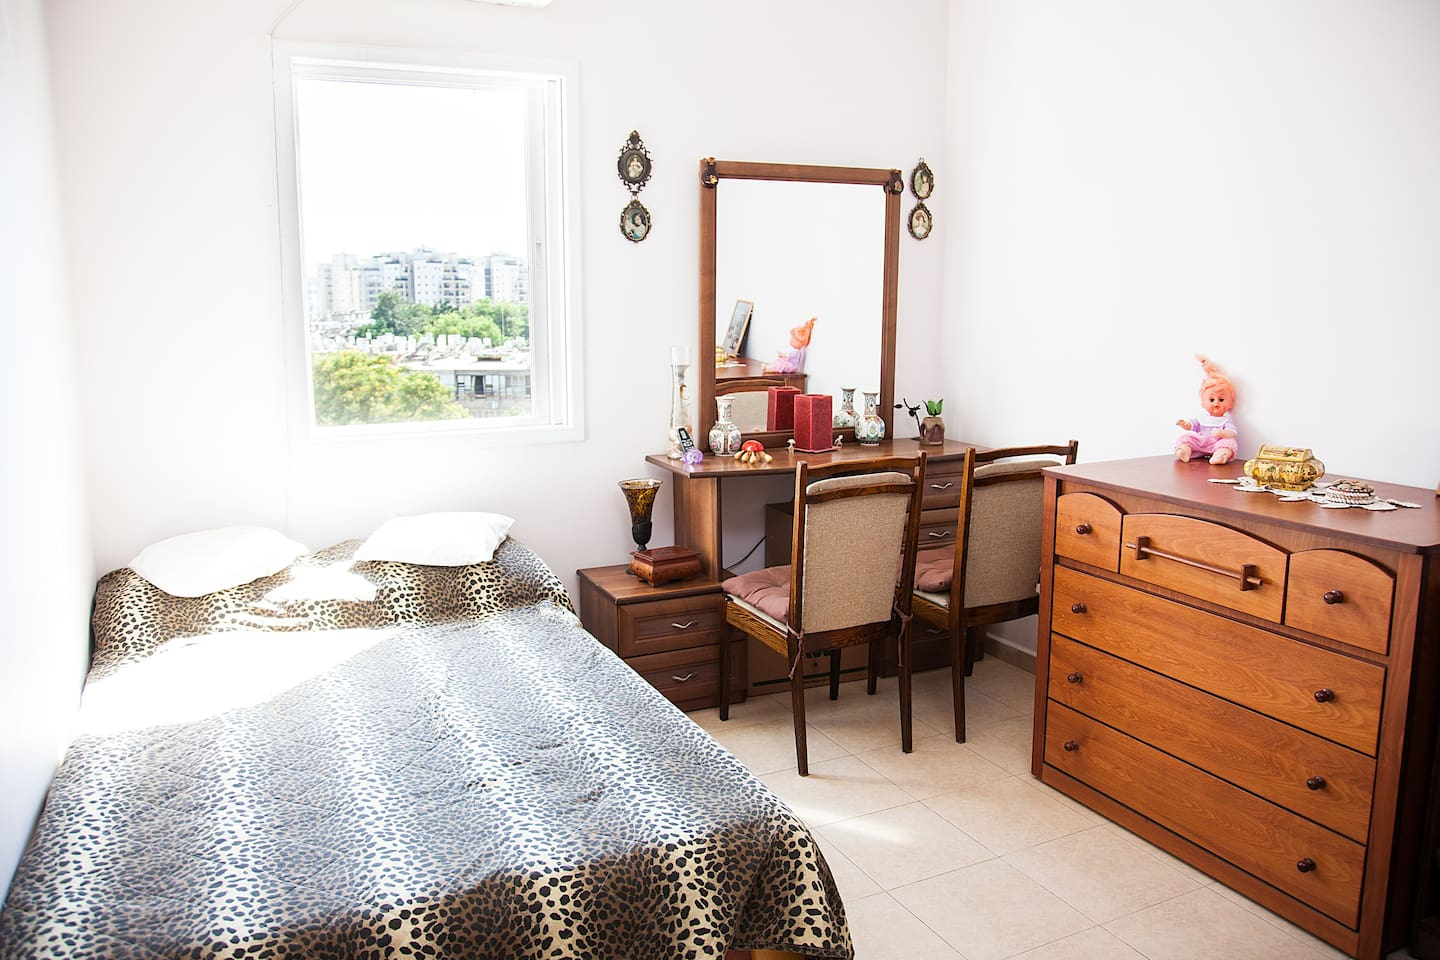 Second bedroom with double futton bed, commode and office desk (air conditioned) overlooking a little garden